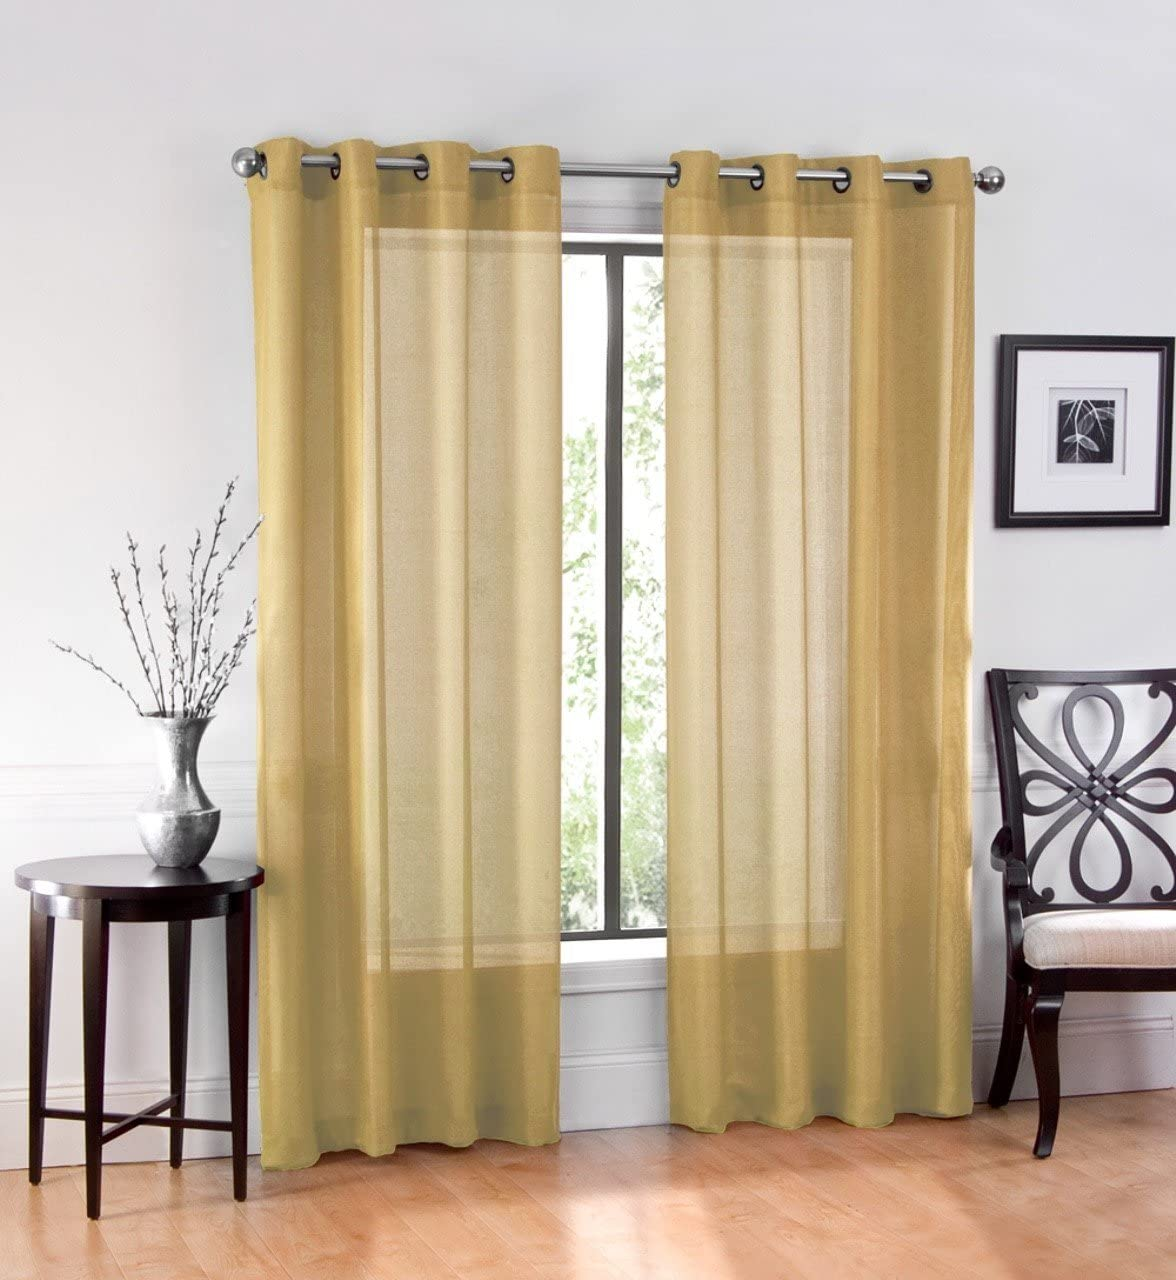 Ruthys Textile 2 Piece Window Sheer Curtains Grommet Panels 54 X 95 Total 108 X 95 Inch Length for Kitchen,Bedroom/Living Room Color: Gold